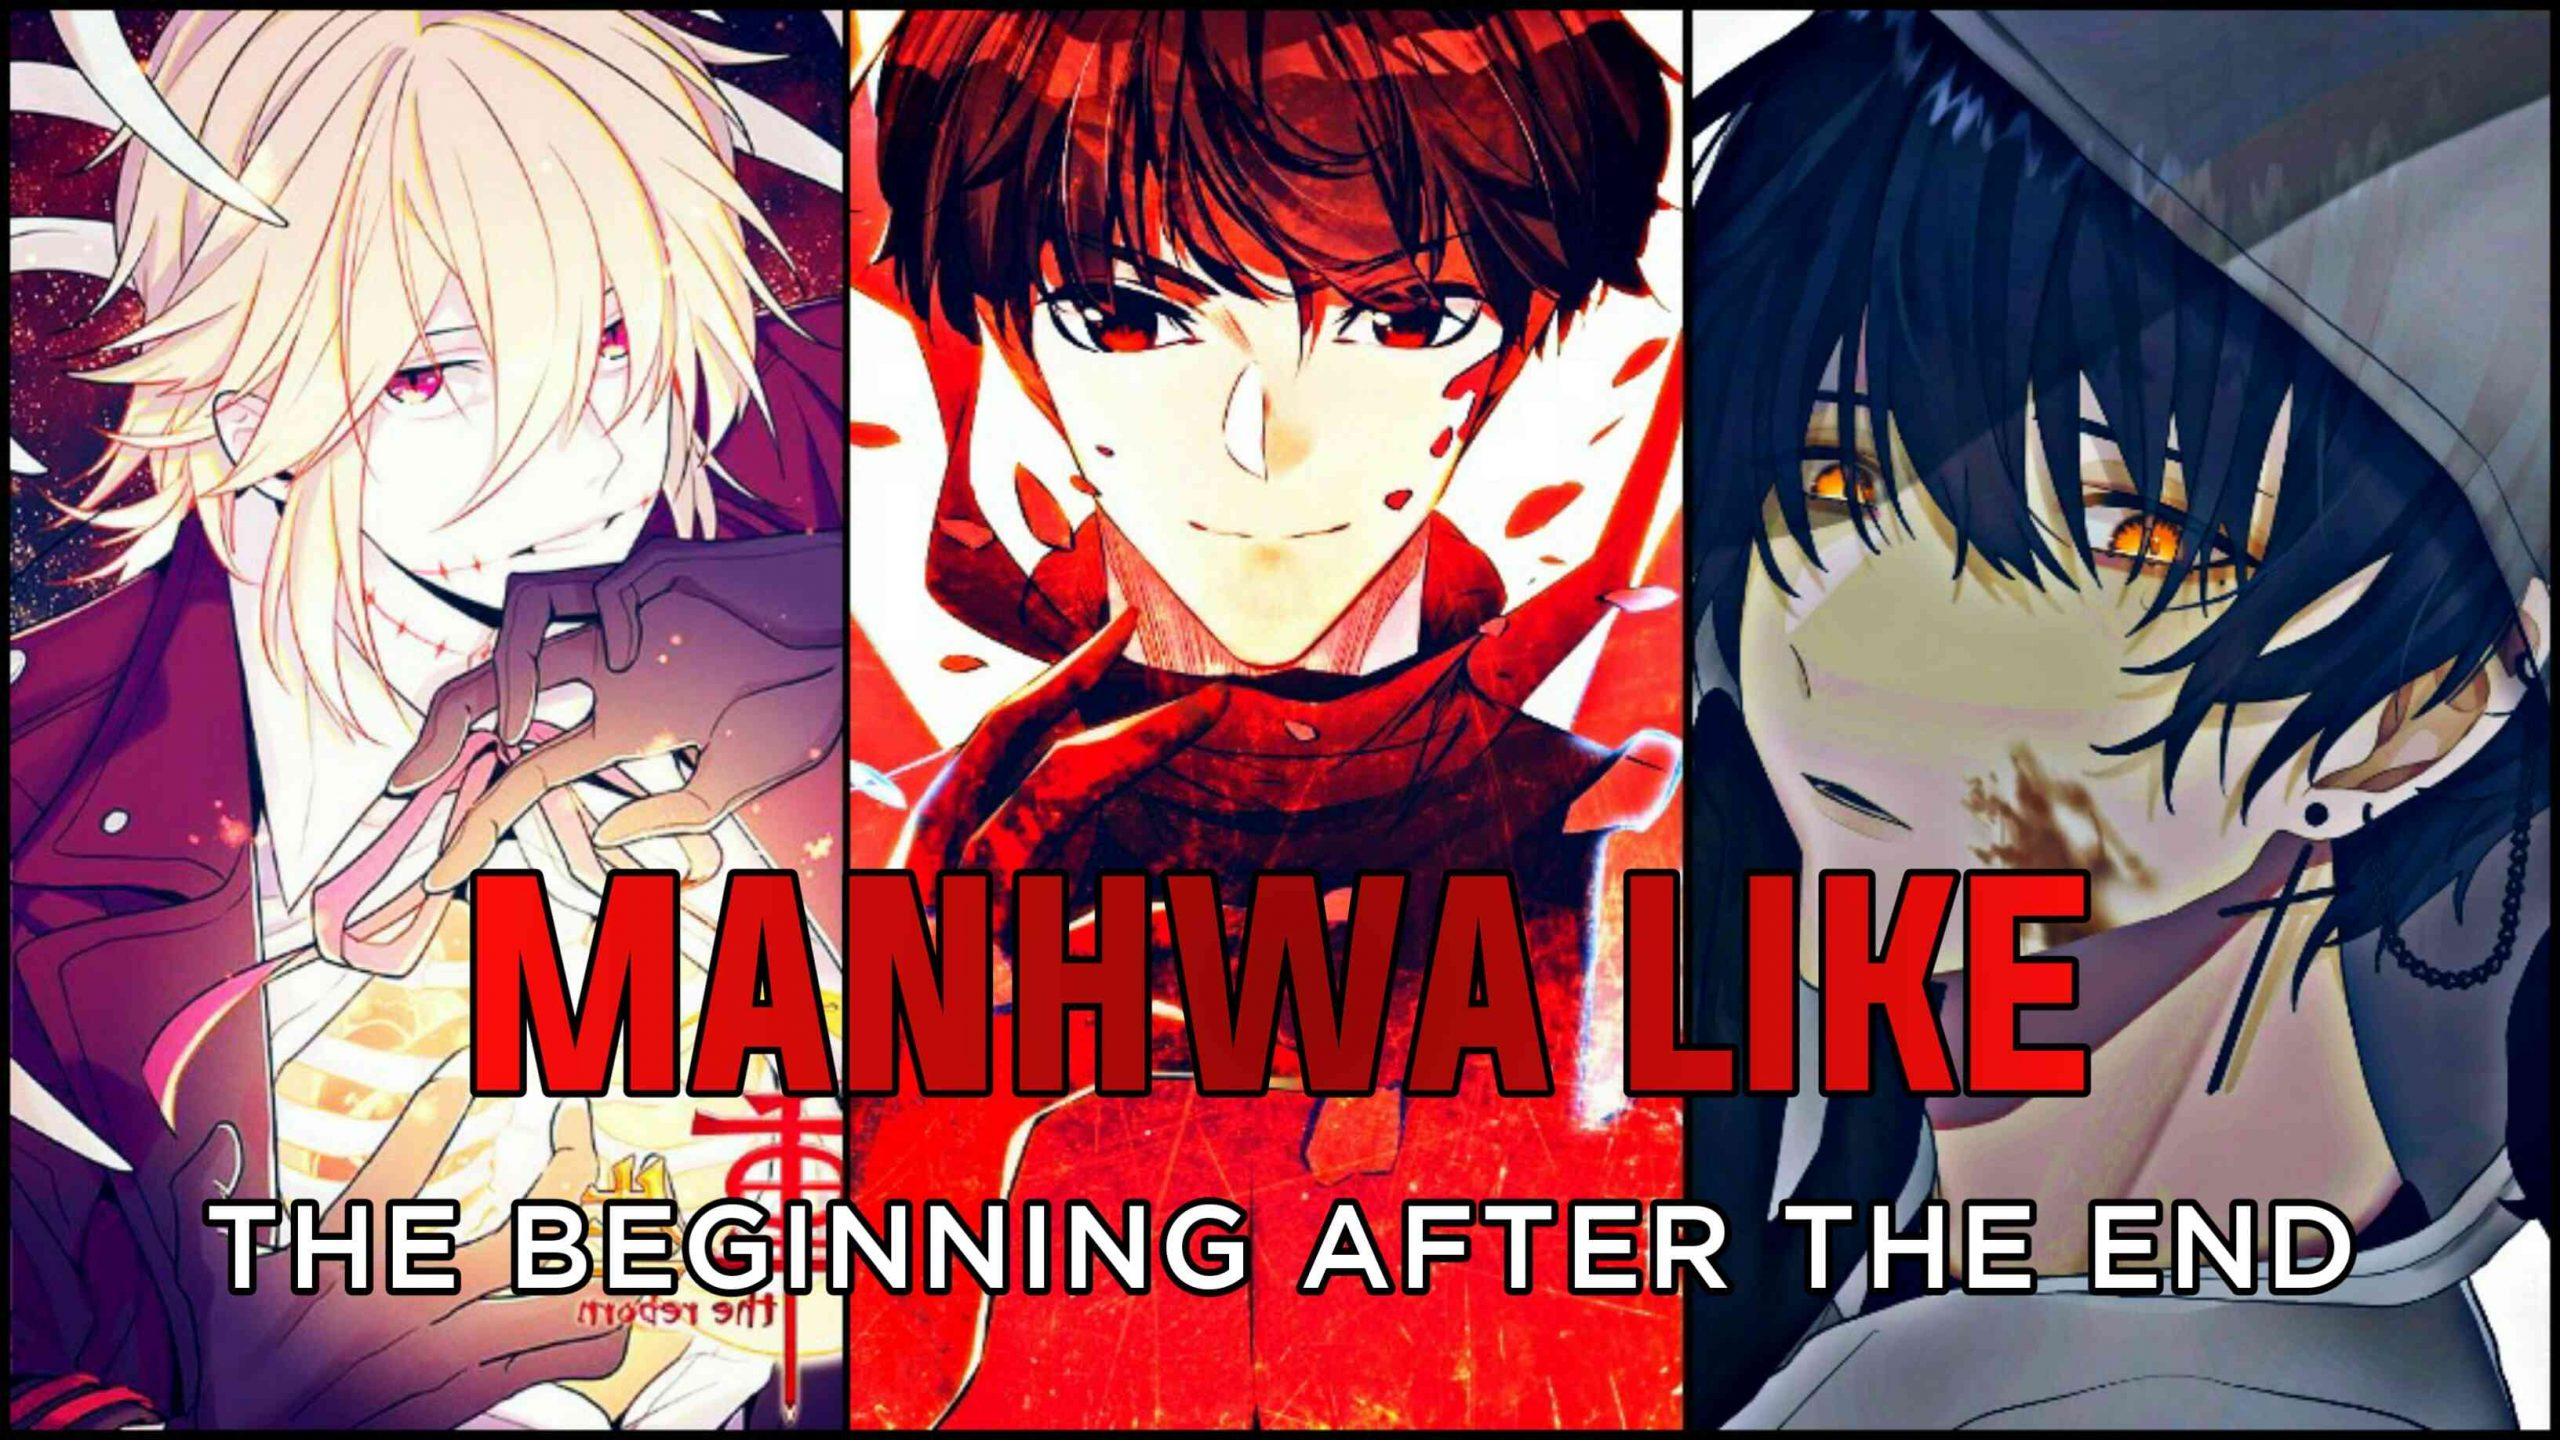 15 Manga similar to the beginning after the end